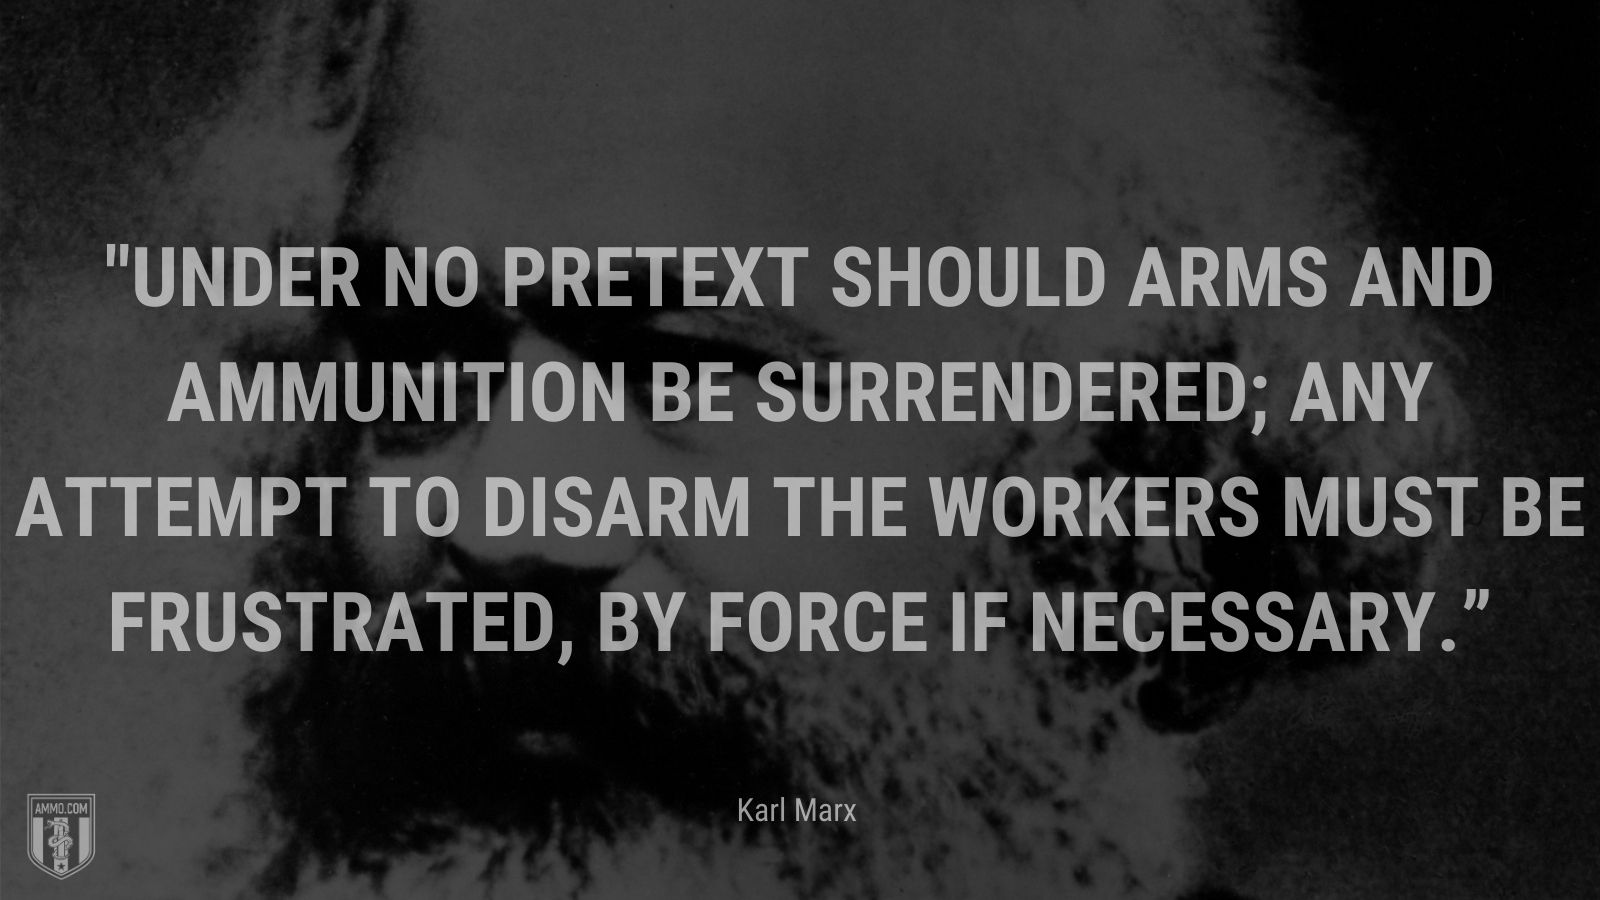 """""""Under no pretext should arms and ammunition be surrendered; any attempt to disarm the workers must be frustrated, by force if necessary."""" - Karl Marx"""